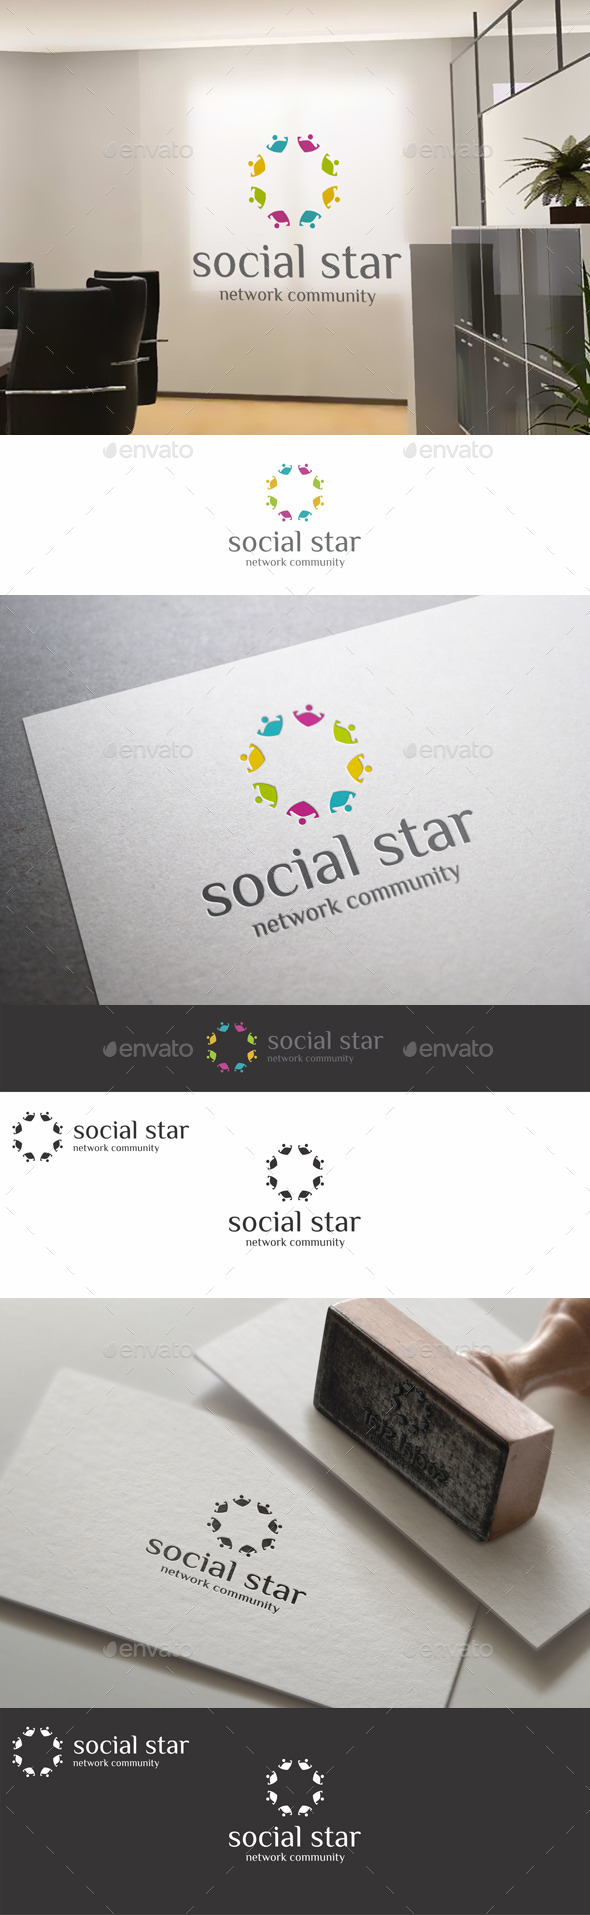 Social Star Teamwork Community Logo